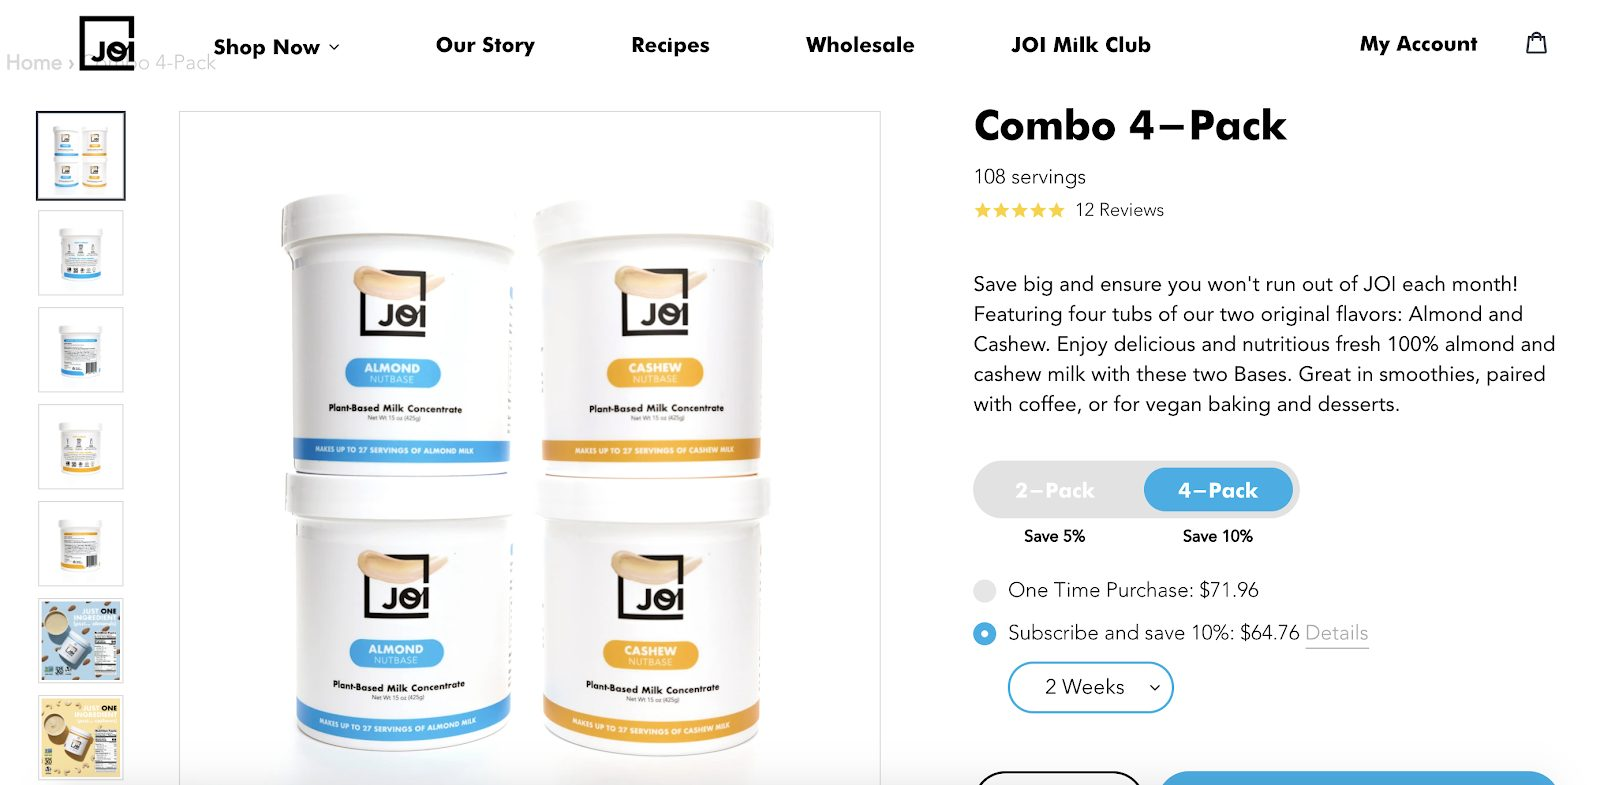 How to Design a Conversation-Optimized Online Shopping Website: Joi page